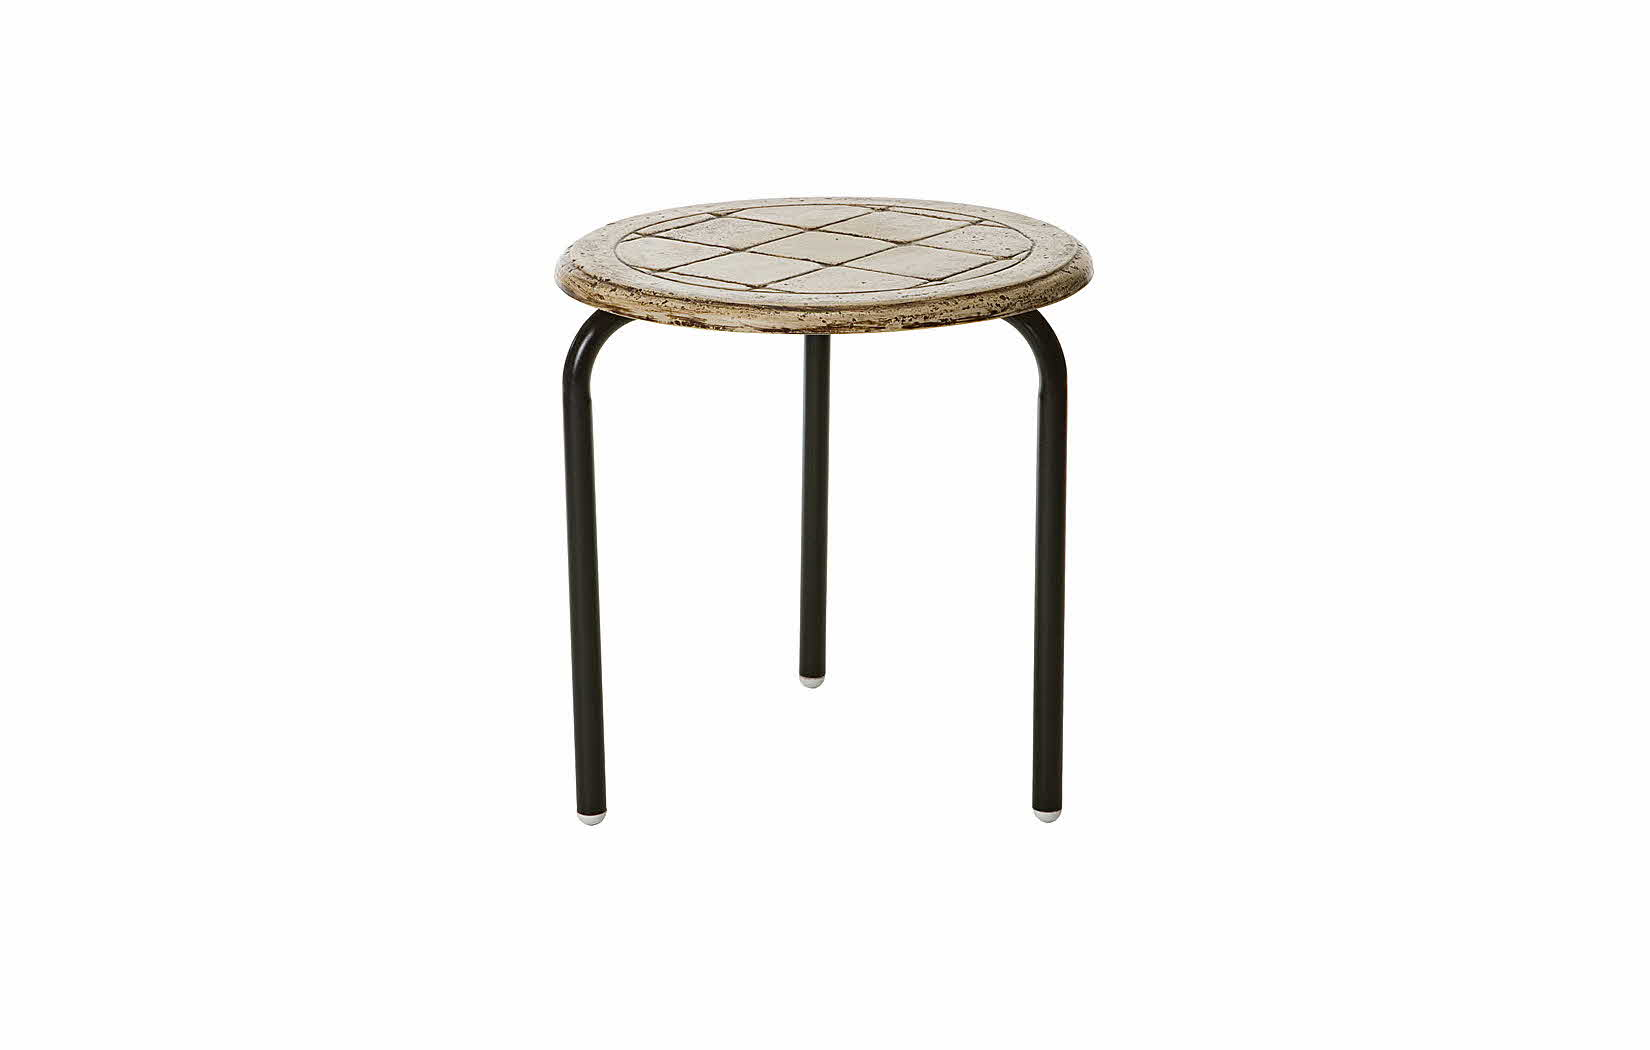 outdoor side tables commercial furniture texacraft main accent table cobblestone fiberglass top oval glass coffee nautical themed black steel porcelain vase lamp small occasional